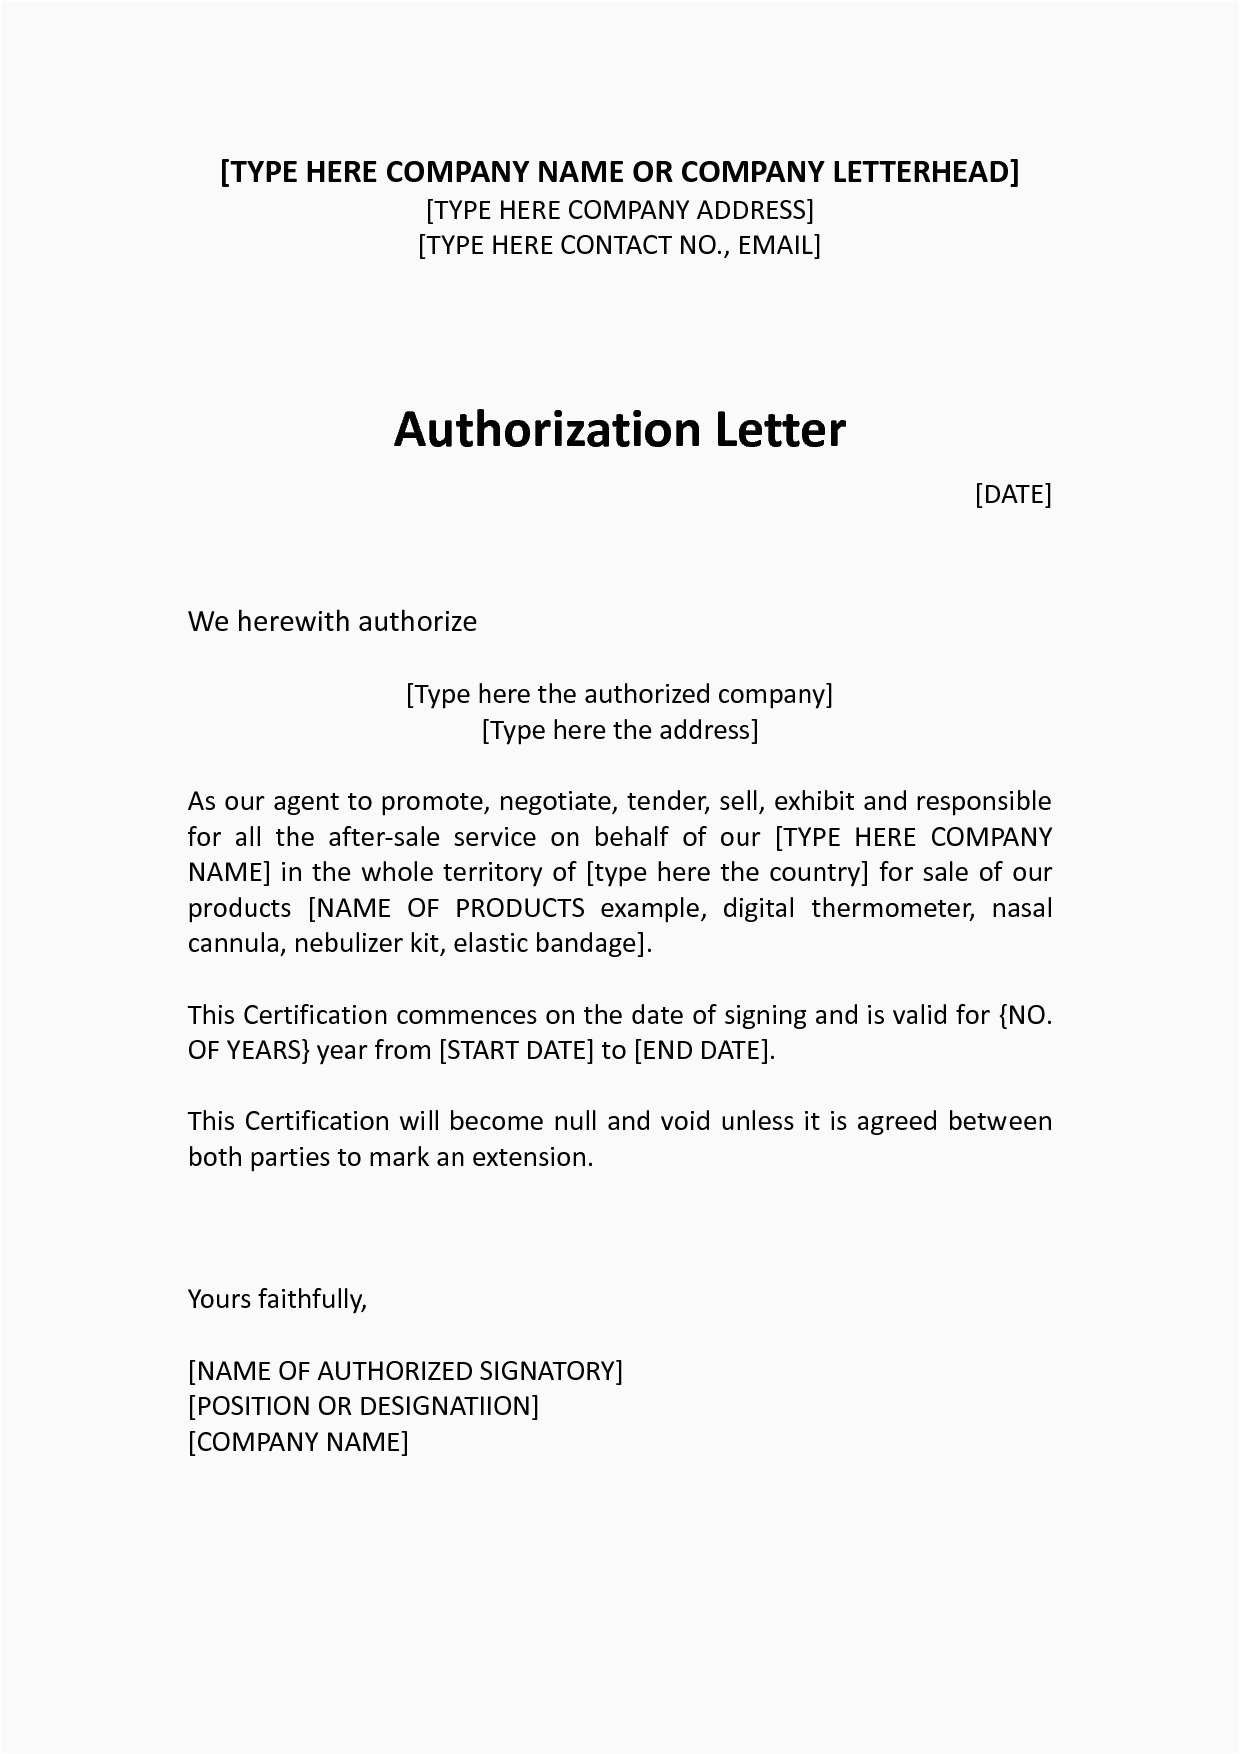 Pin by Gprime Images on Letterhead Formats | Business letter